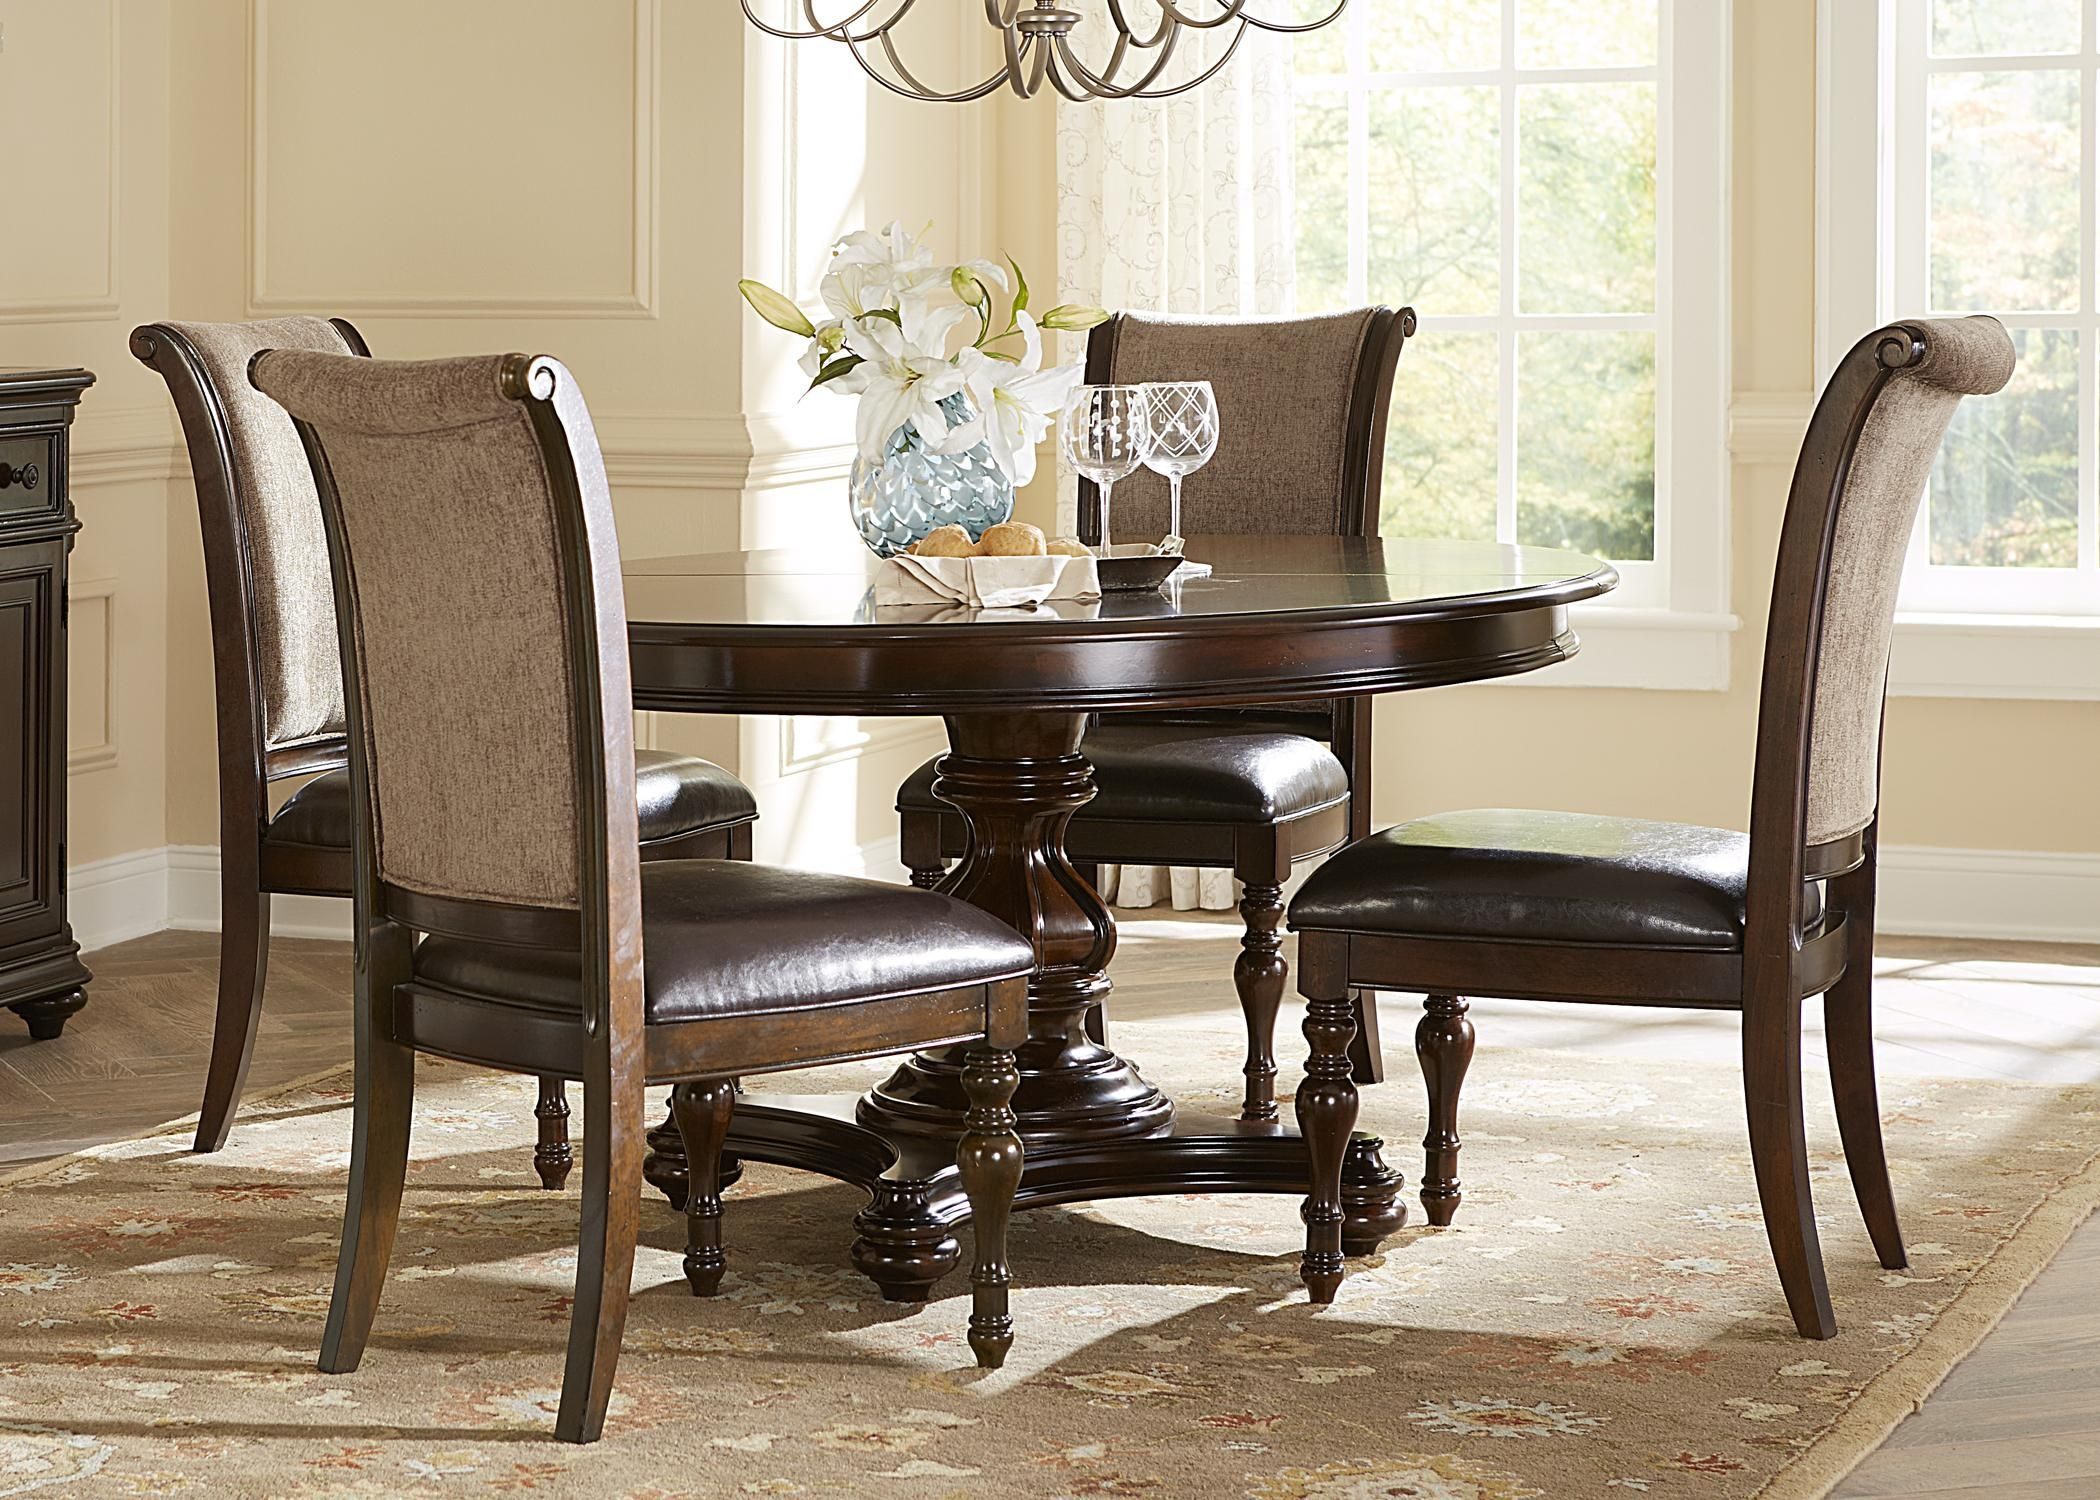 Merveilleux Formal Oval Dining Table Set